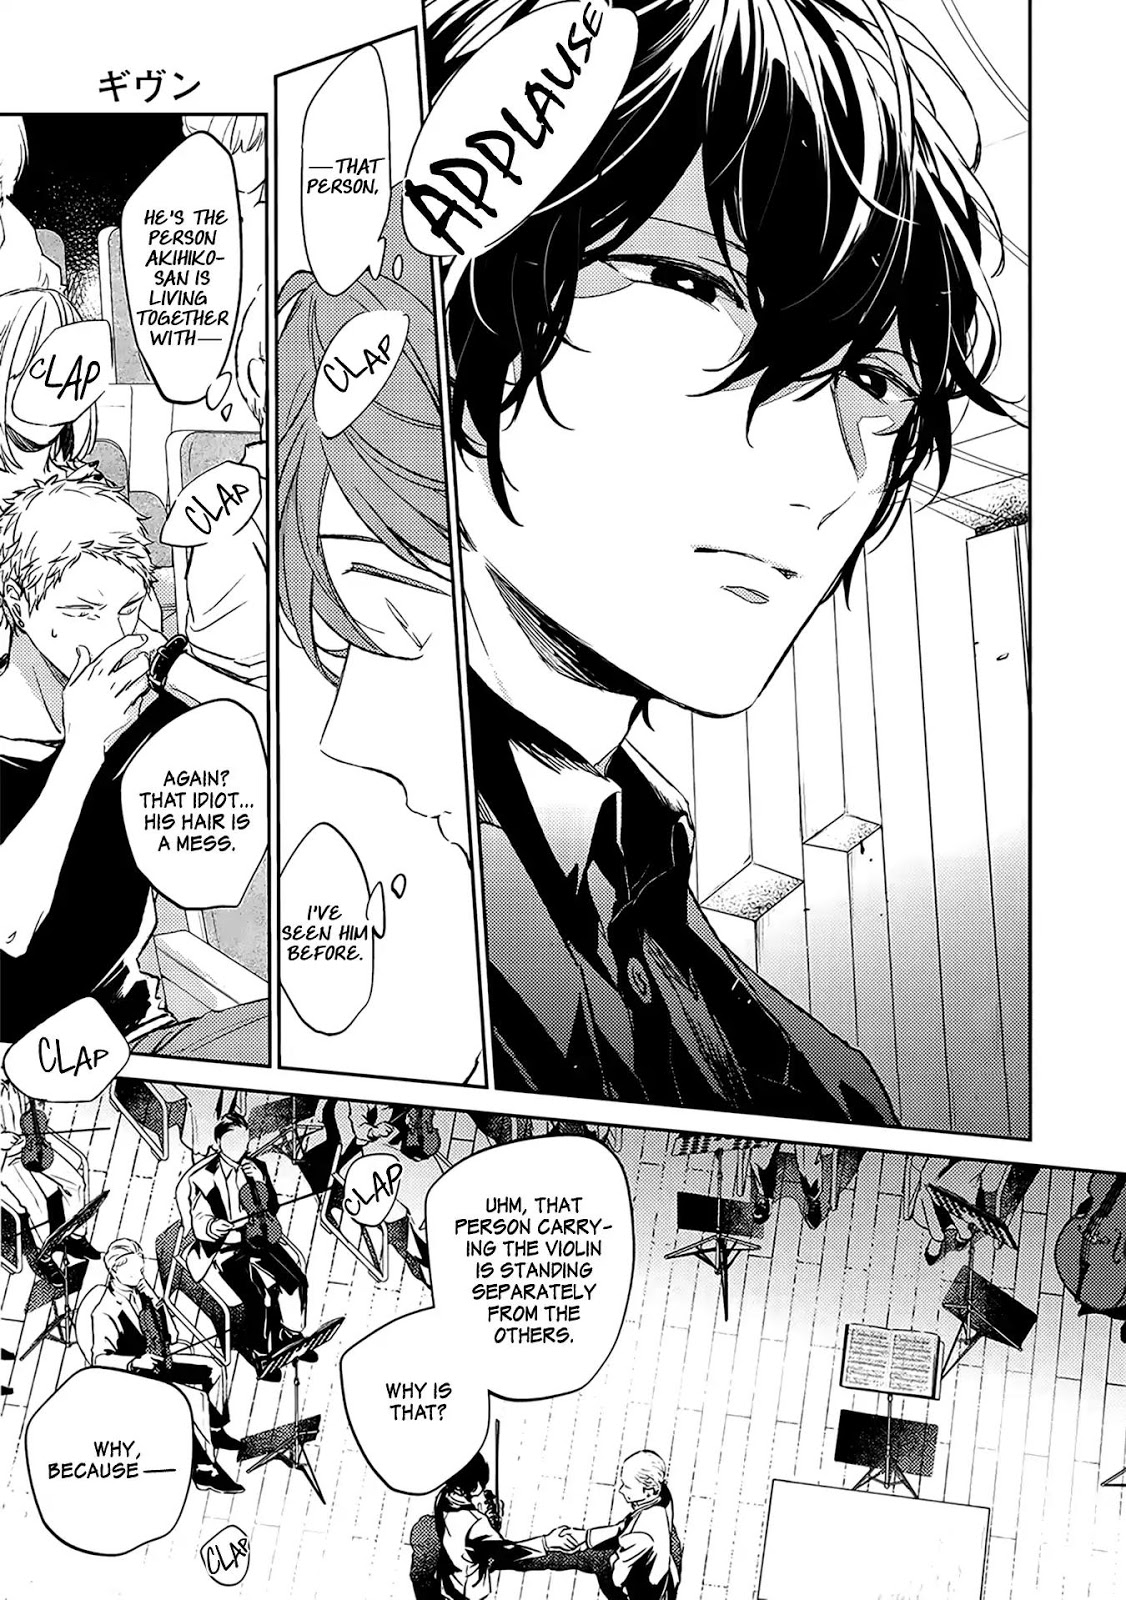 Given, Chapter 15 - Given Manga Online